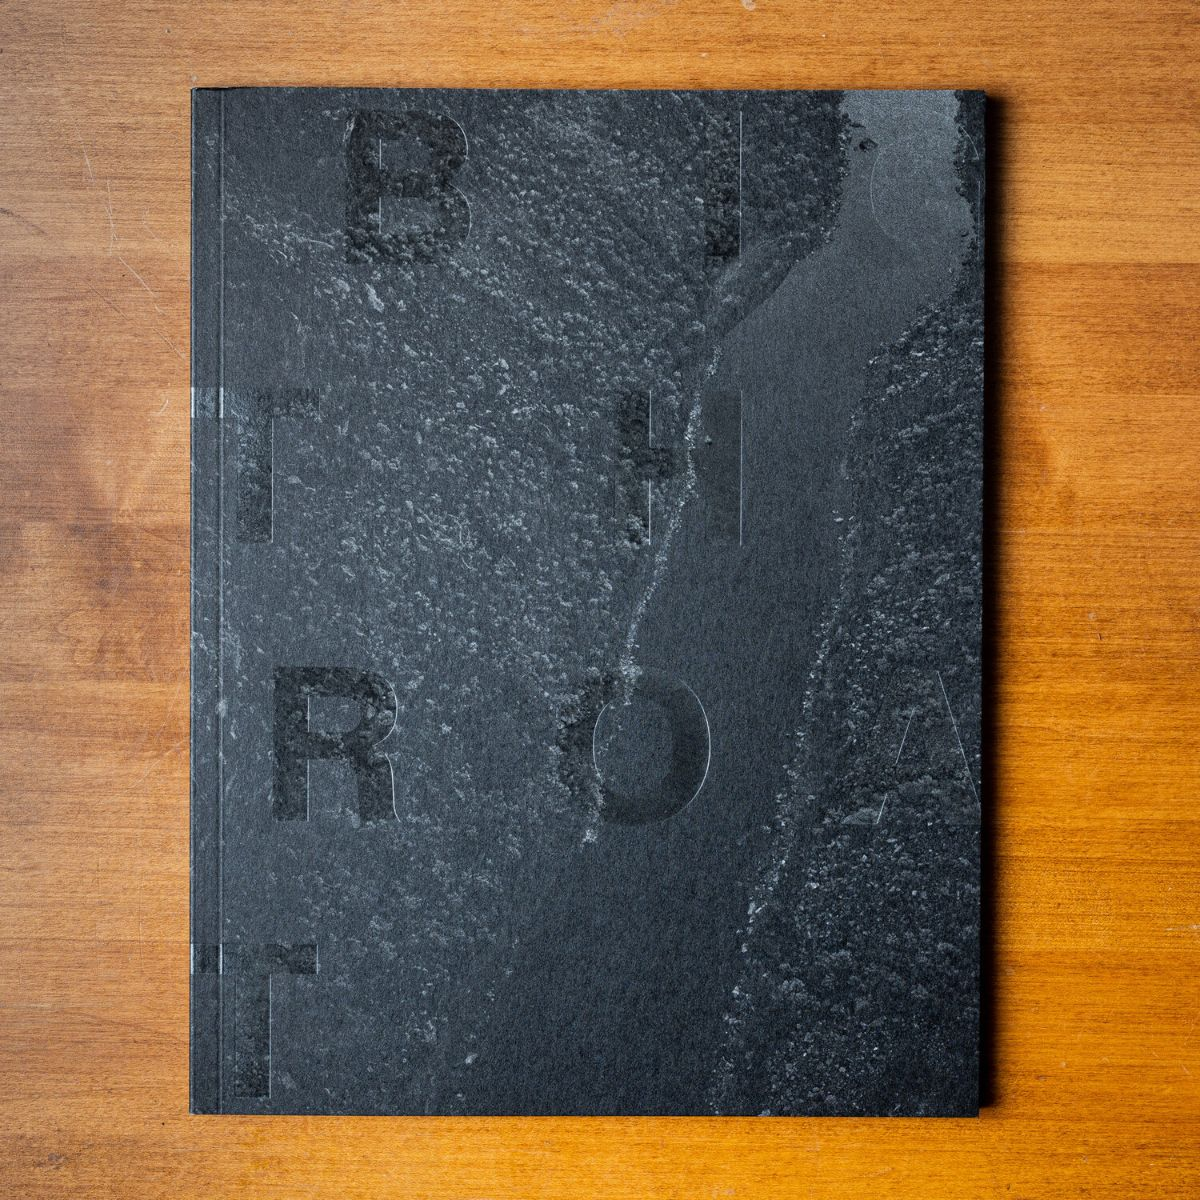 Black book cover with letters B, T, H, R, O, T scattered on the cover